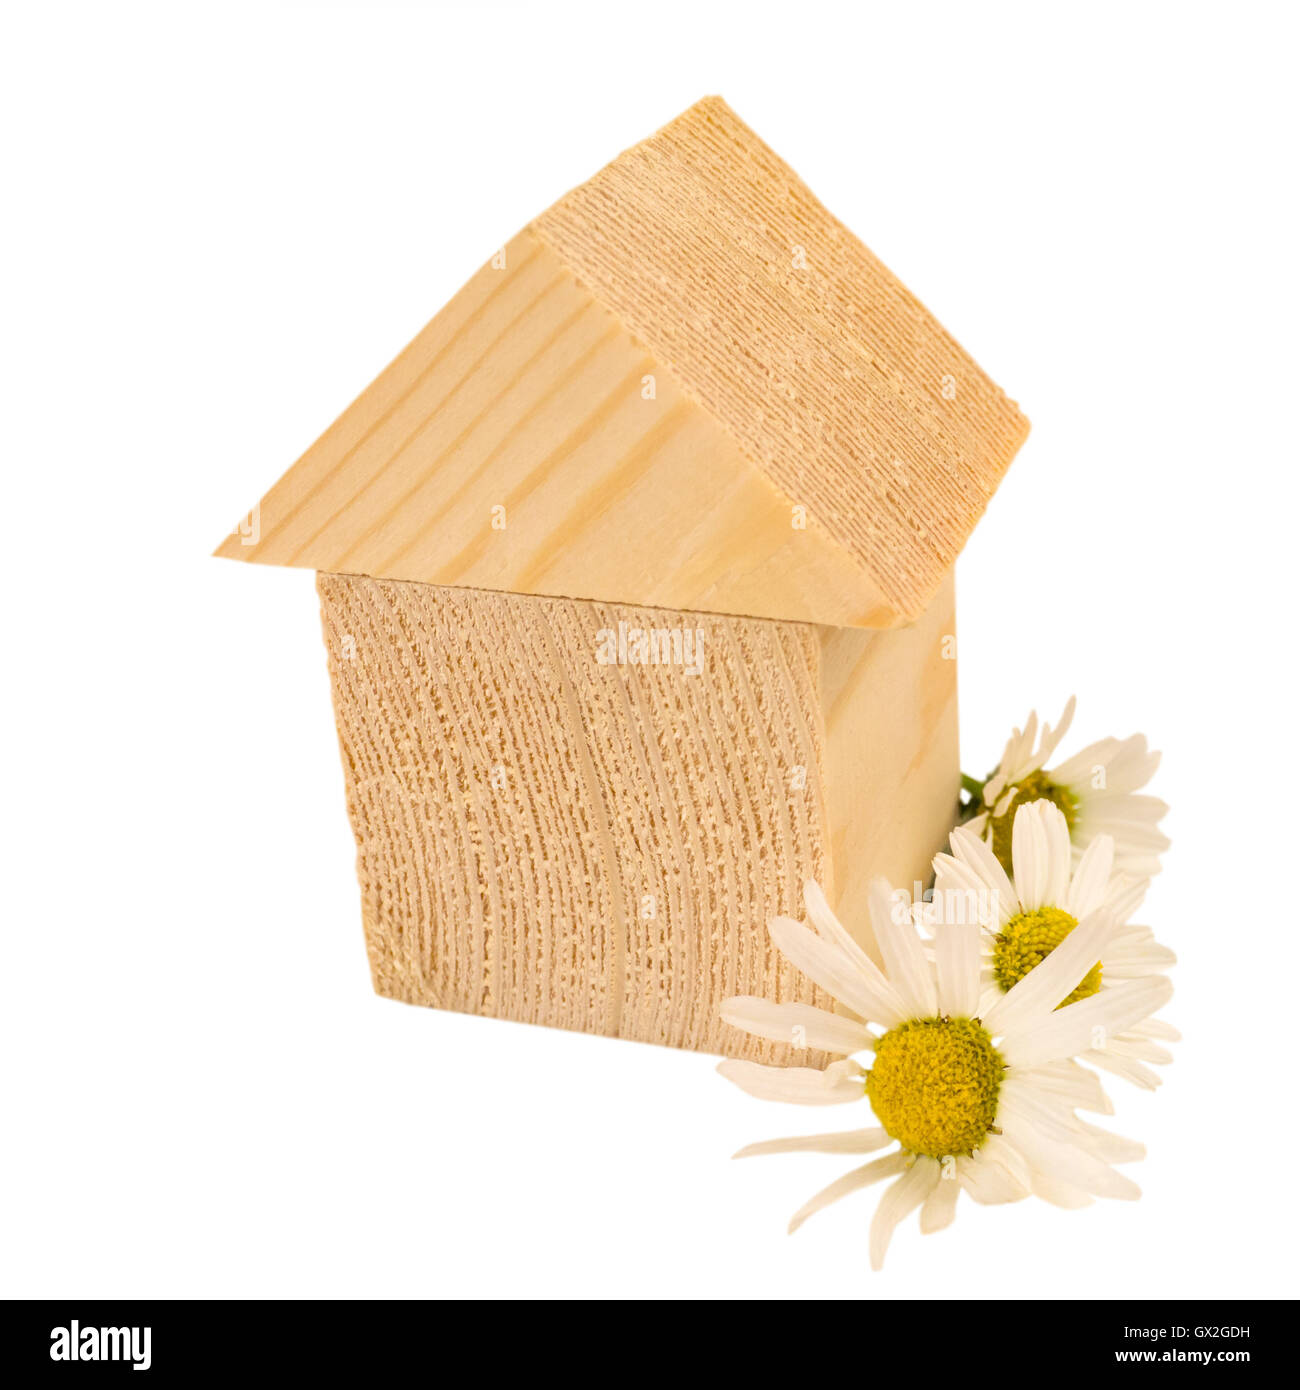 House of wooden building blocks with chamomile flowers isolated on white - Stock Image